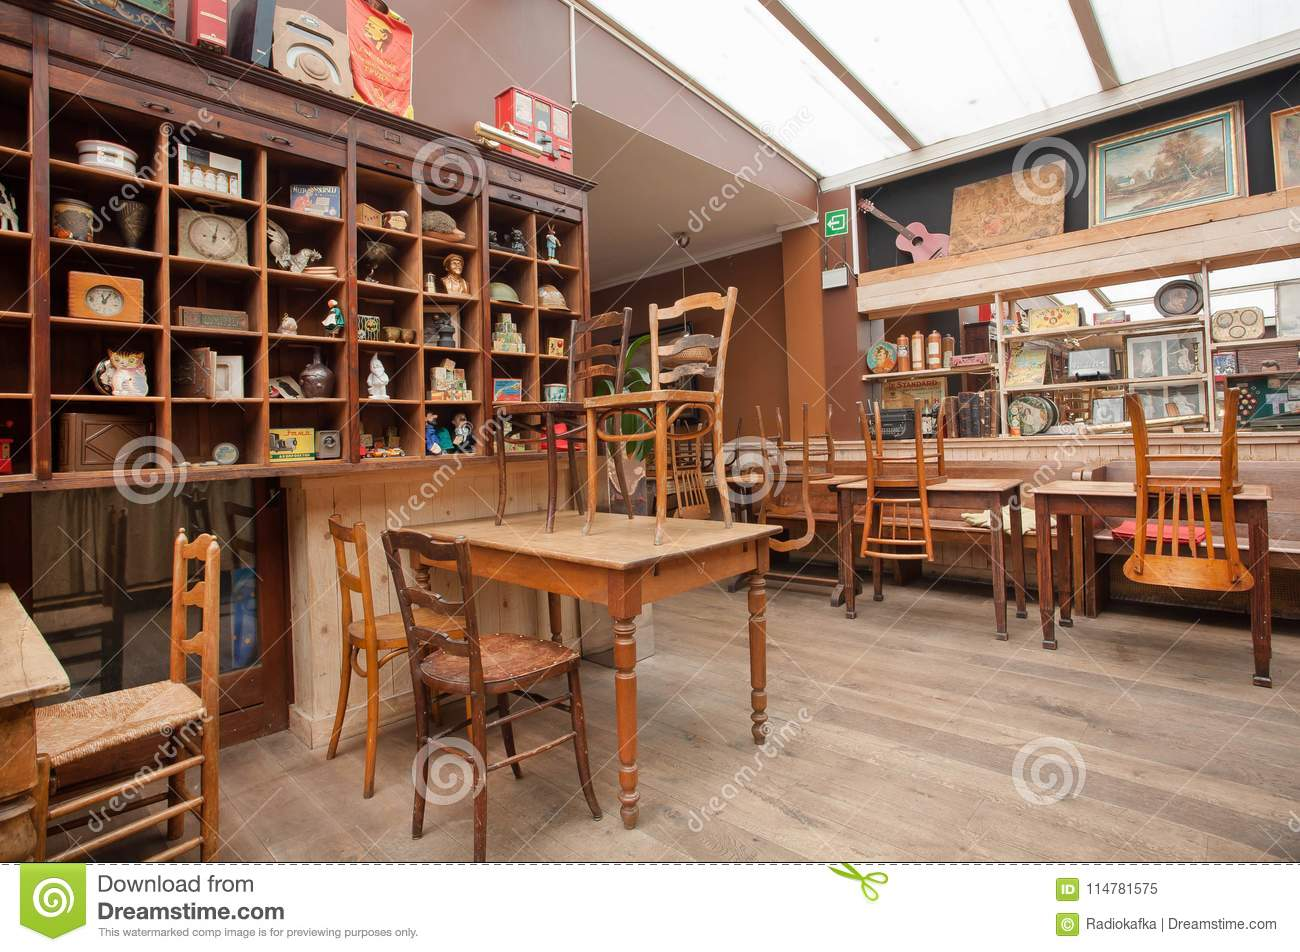 Empty Room In Vintage Style Cafe With Wooden Tables And